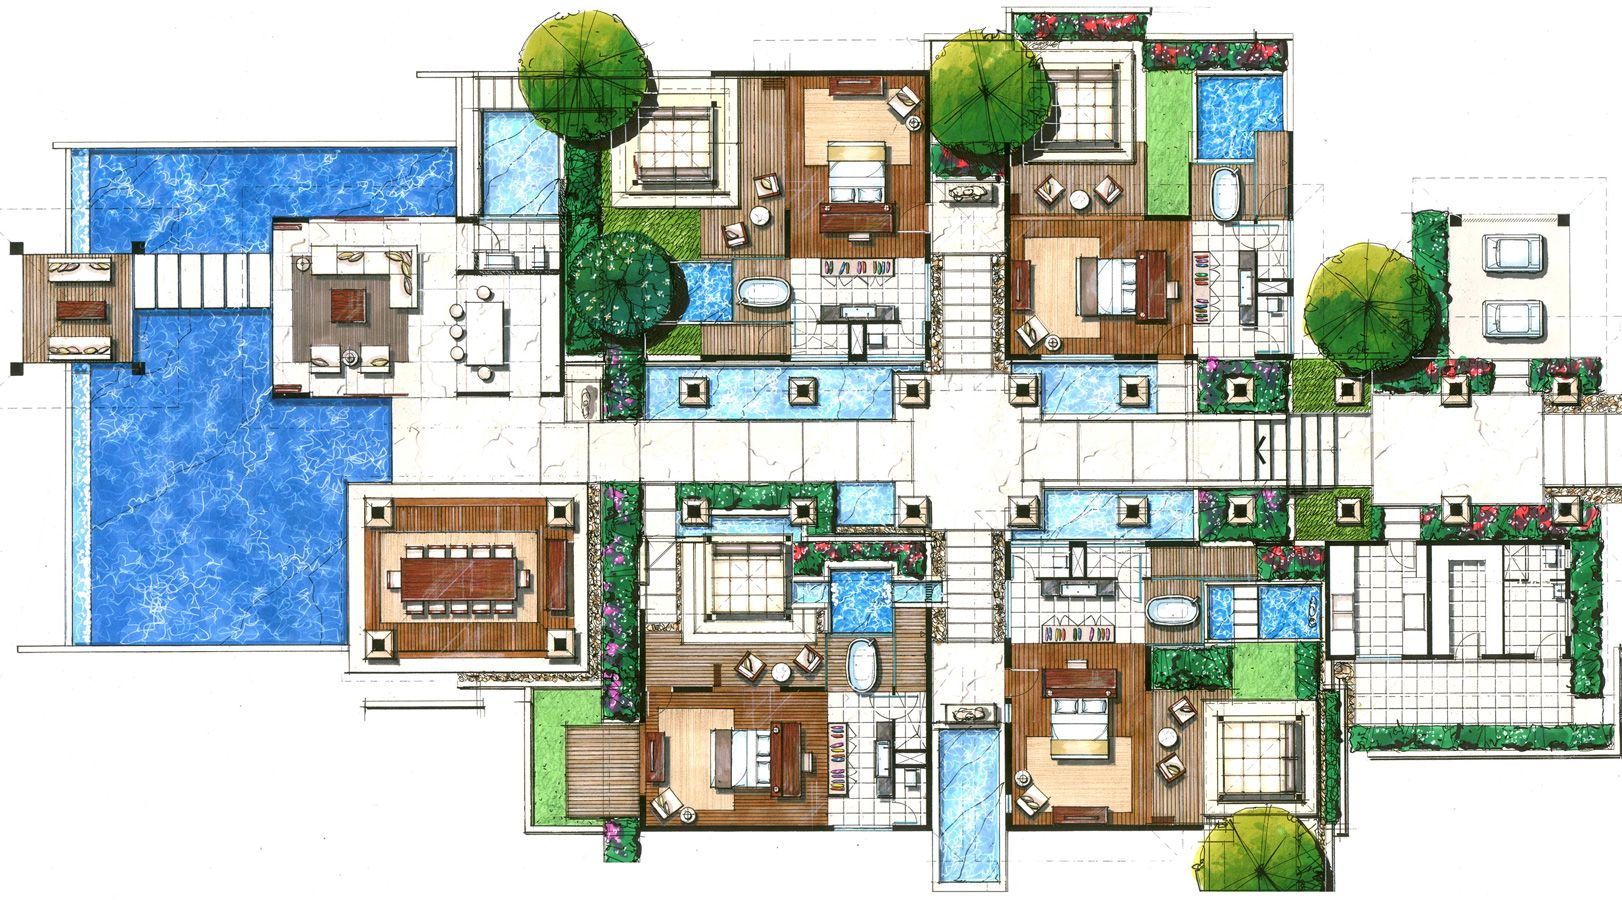 Villas Floor Plans Floor Plans Villas Resorts Joy: 3 bedroom villa floor plans